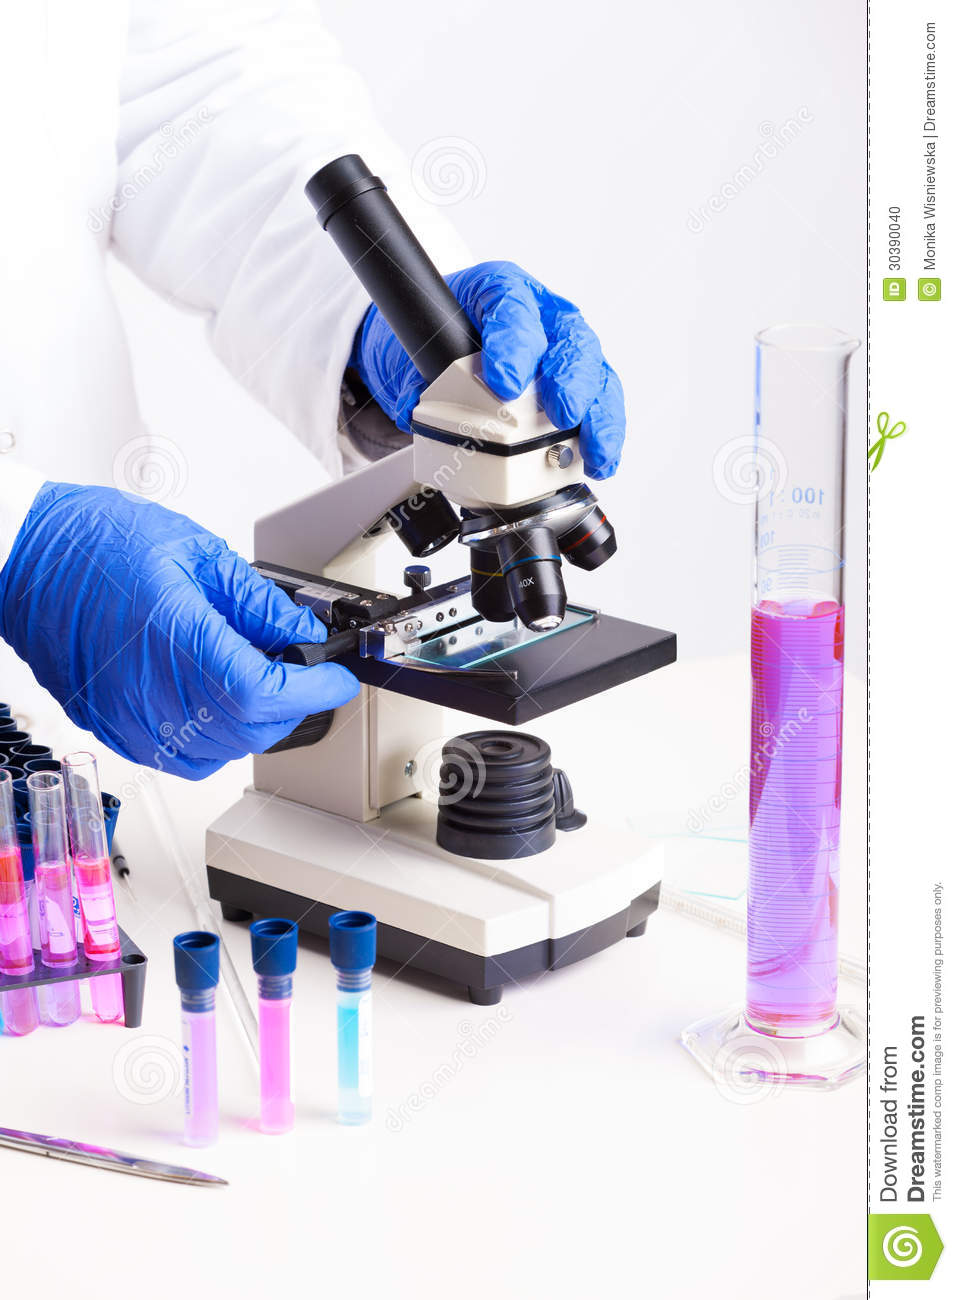 Laboratory Test Instruments : Laboratory equipment stock photo image of growth disease